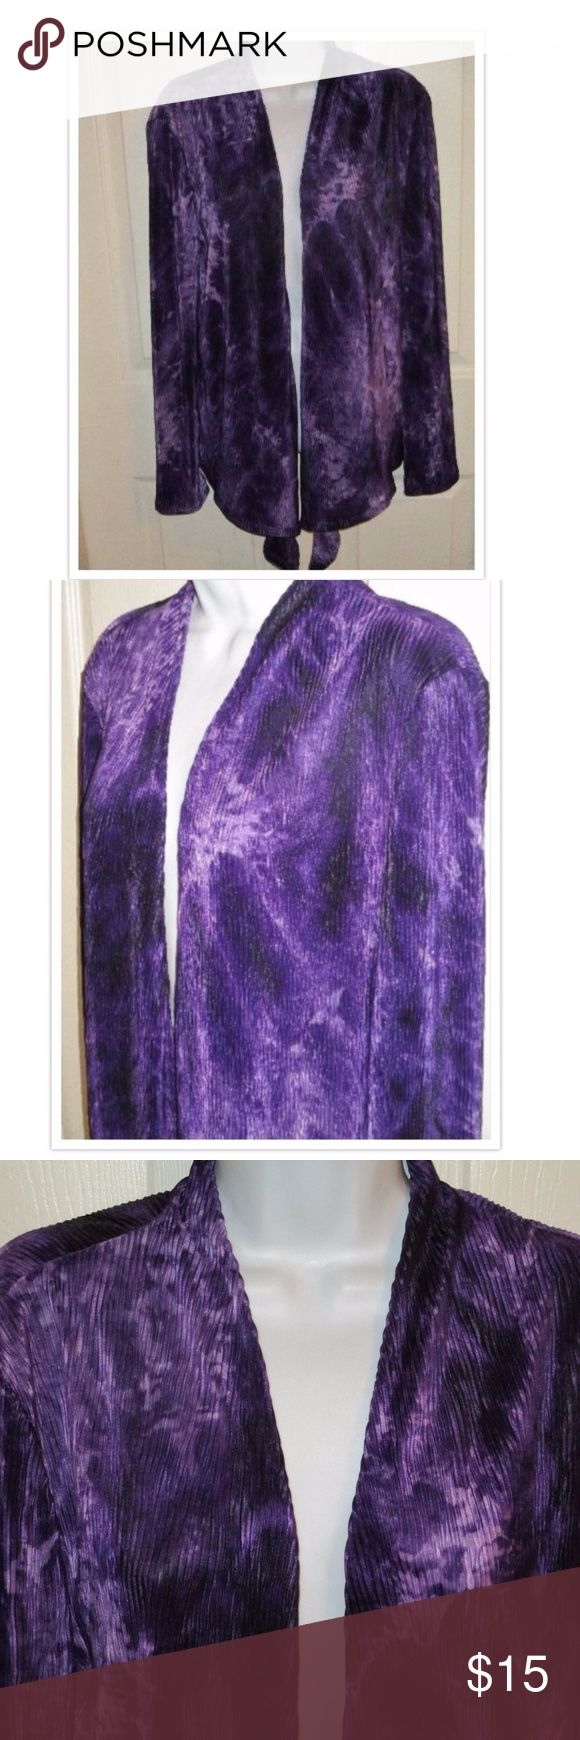 Chico's Purple and White Tie Dye Jacket SZ 2 M This is gorgeous.. Has a tie Dye Effect.. Open Jacket. The length is 26 inches. Material is 100% Polyester. Follow me on twitter @hkymom93 and on instagram @closet2closet93... Check out y fashion blog:https://lisa-the-fashionista.blogspot.com/ Chico's Jackets & Coats